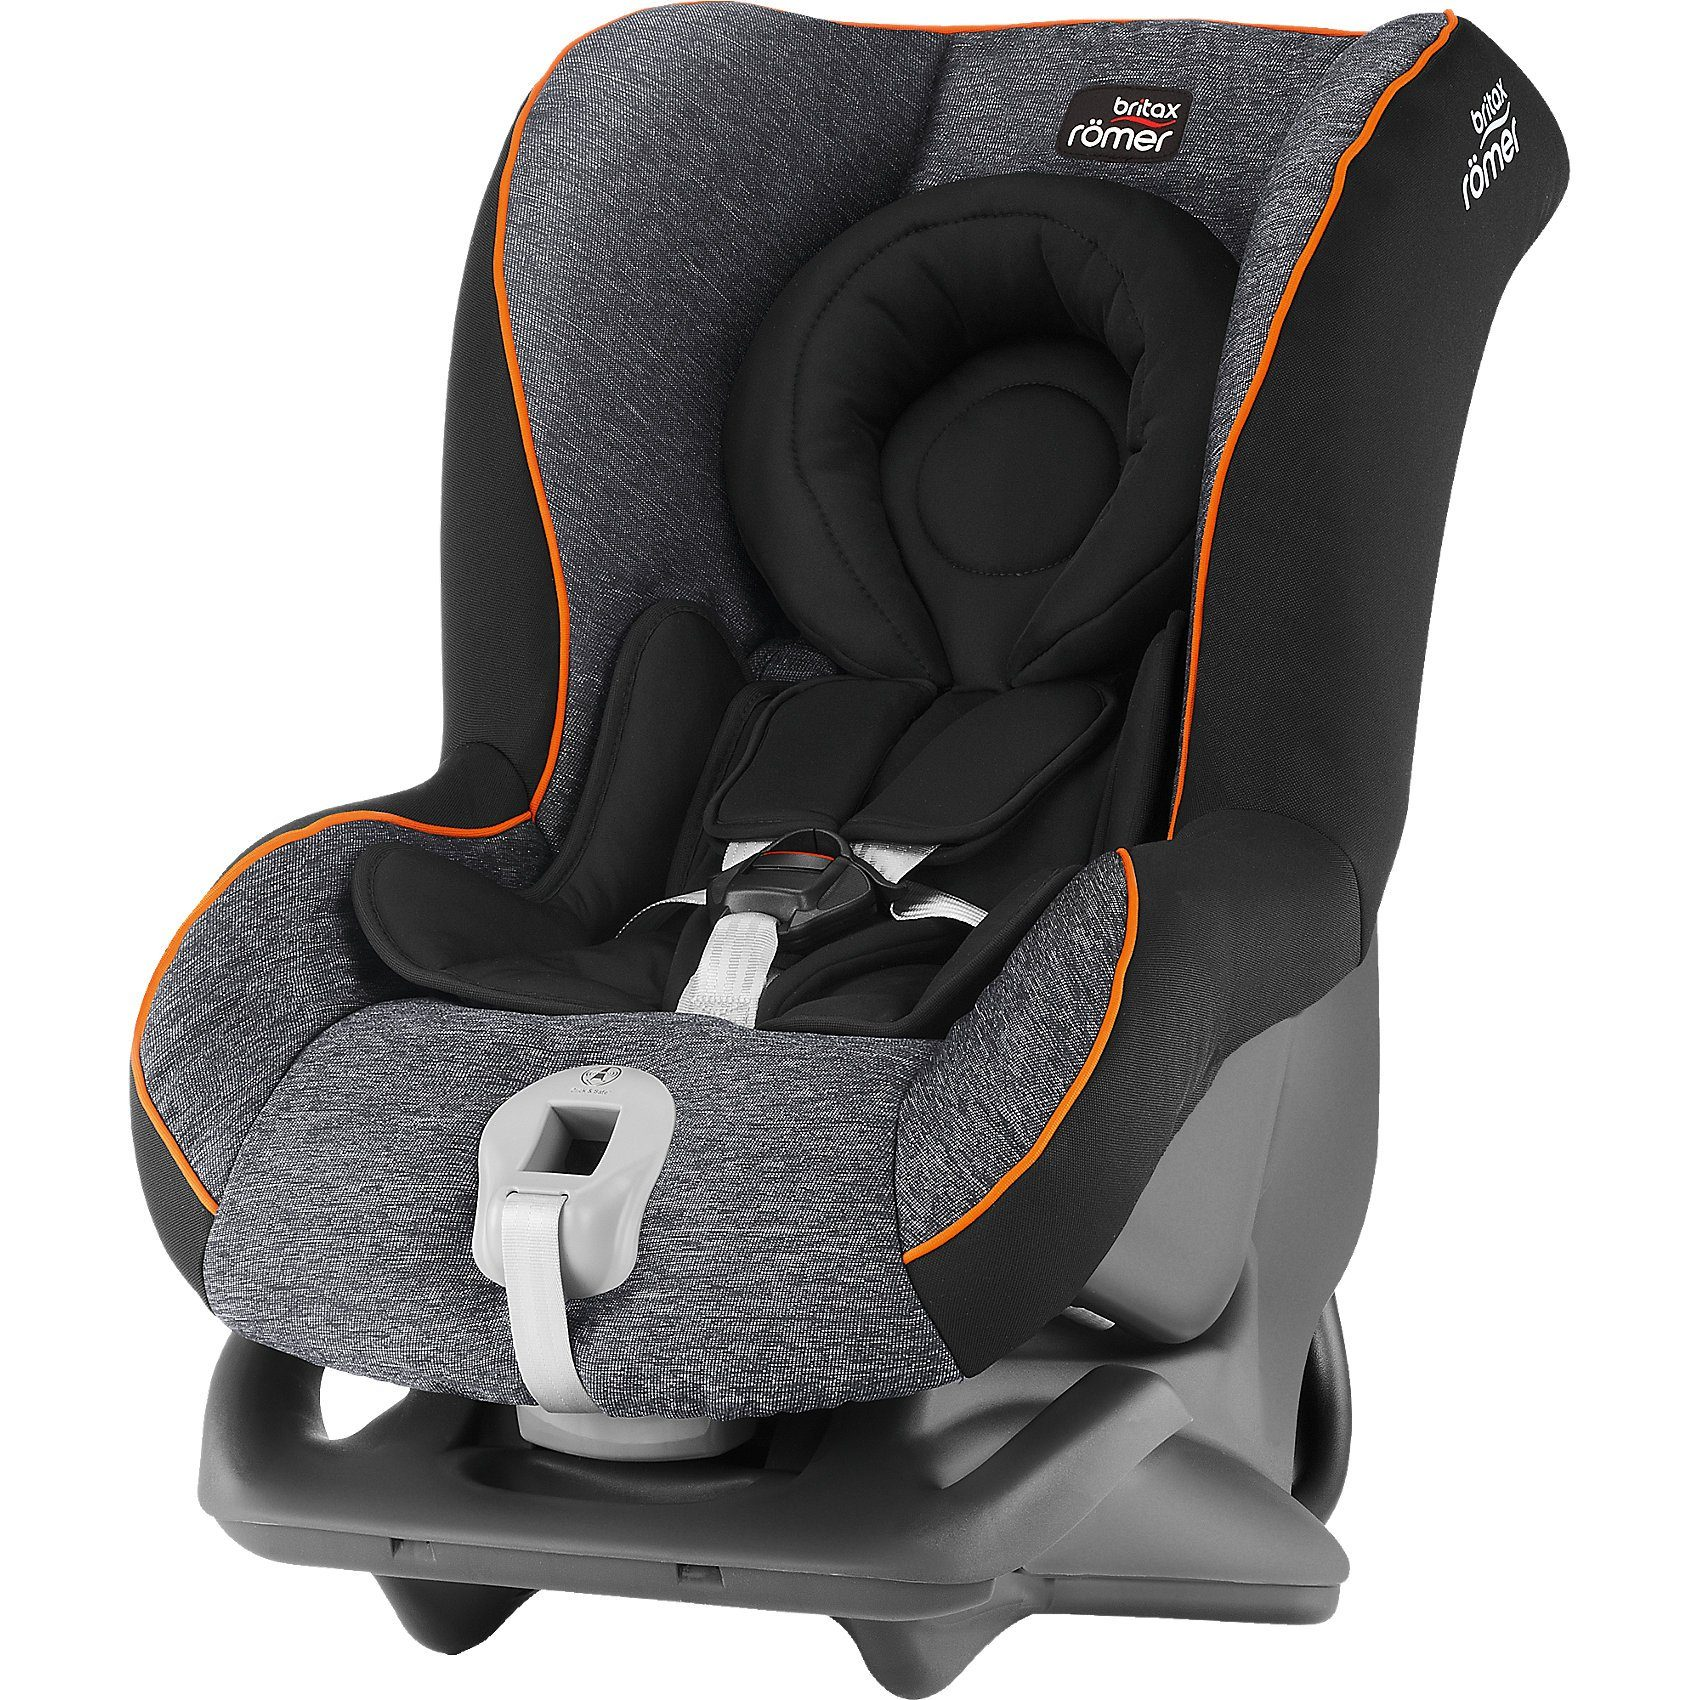 BRITAX RÖMER Auto-Kindersitz First Class Plus, Black Marble, 2018